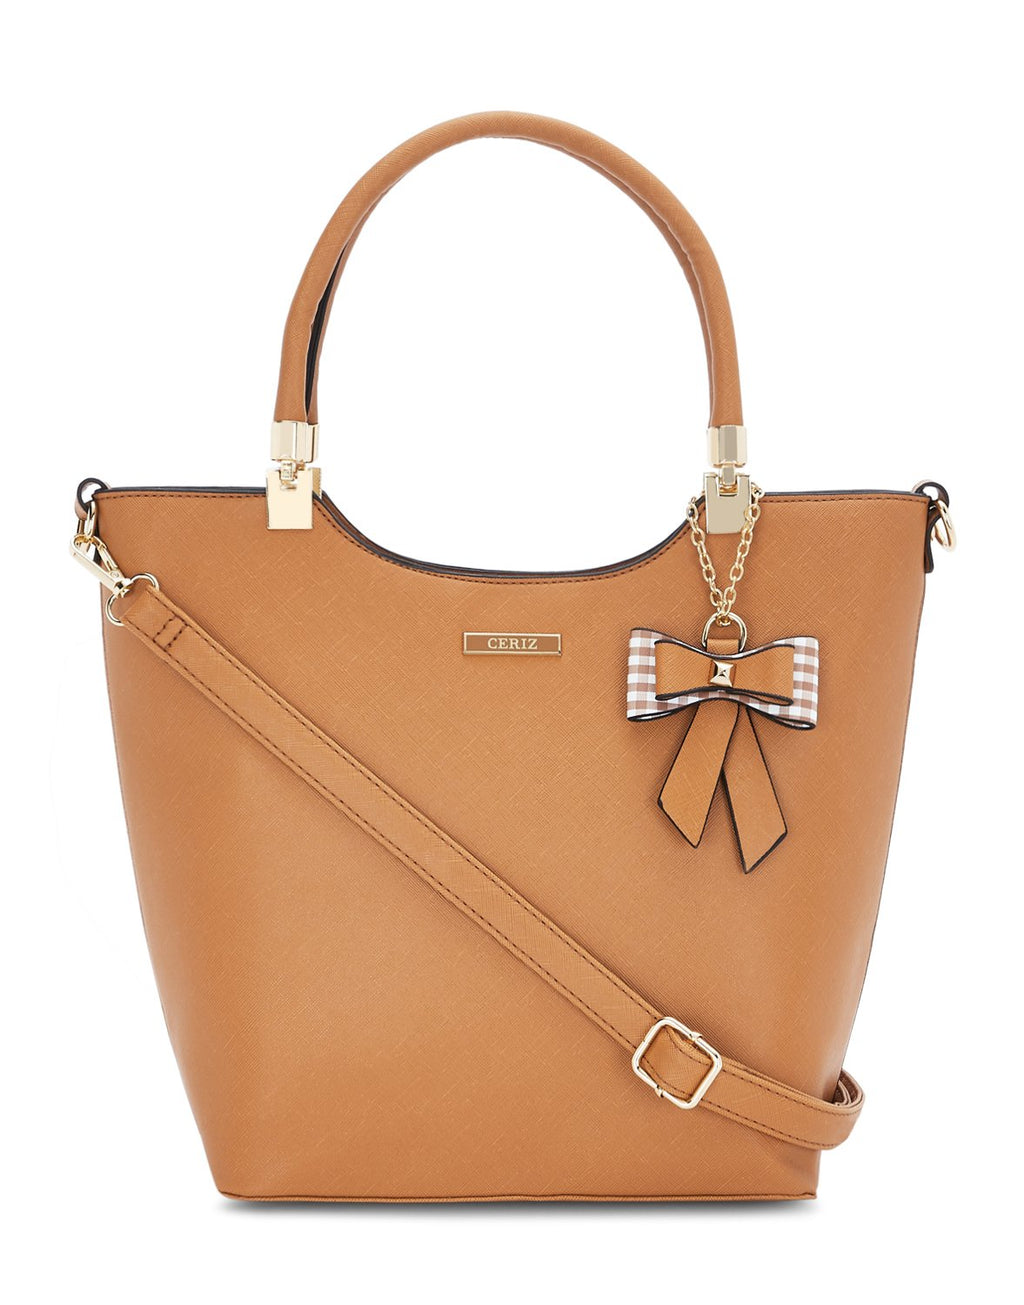 Coutenay Natty Tan Handbag